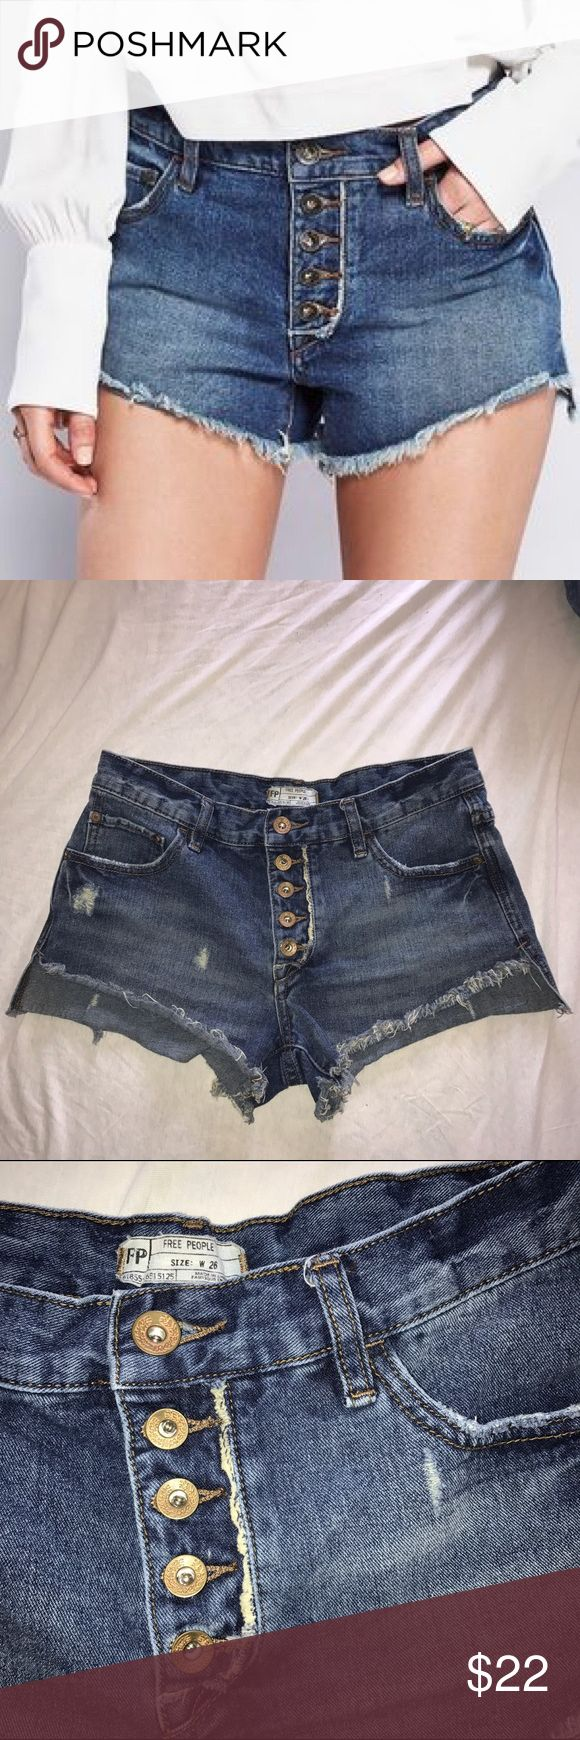 Free people runaway slouch cutoffs jean shorts Boho chic slouchy fit cut off shorts. Distressed medium wash jean shorts. Side skits - longer in the back. In very nice preowned condition! Free People Shorts Jean Shorts